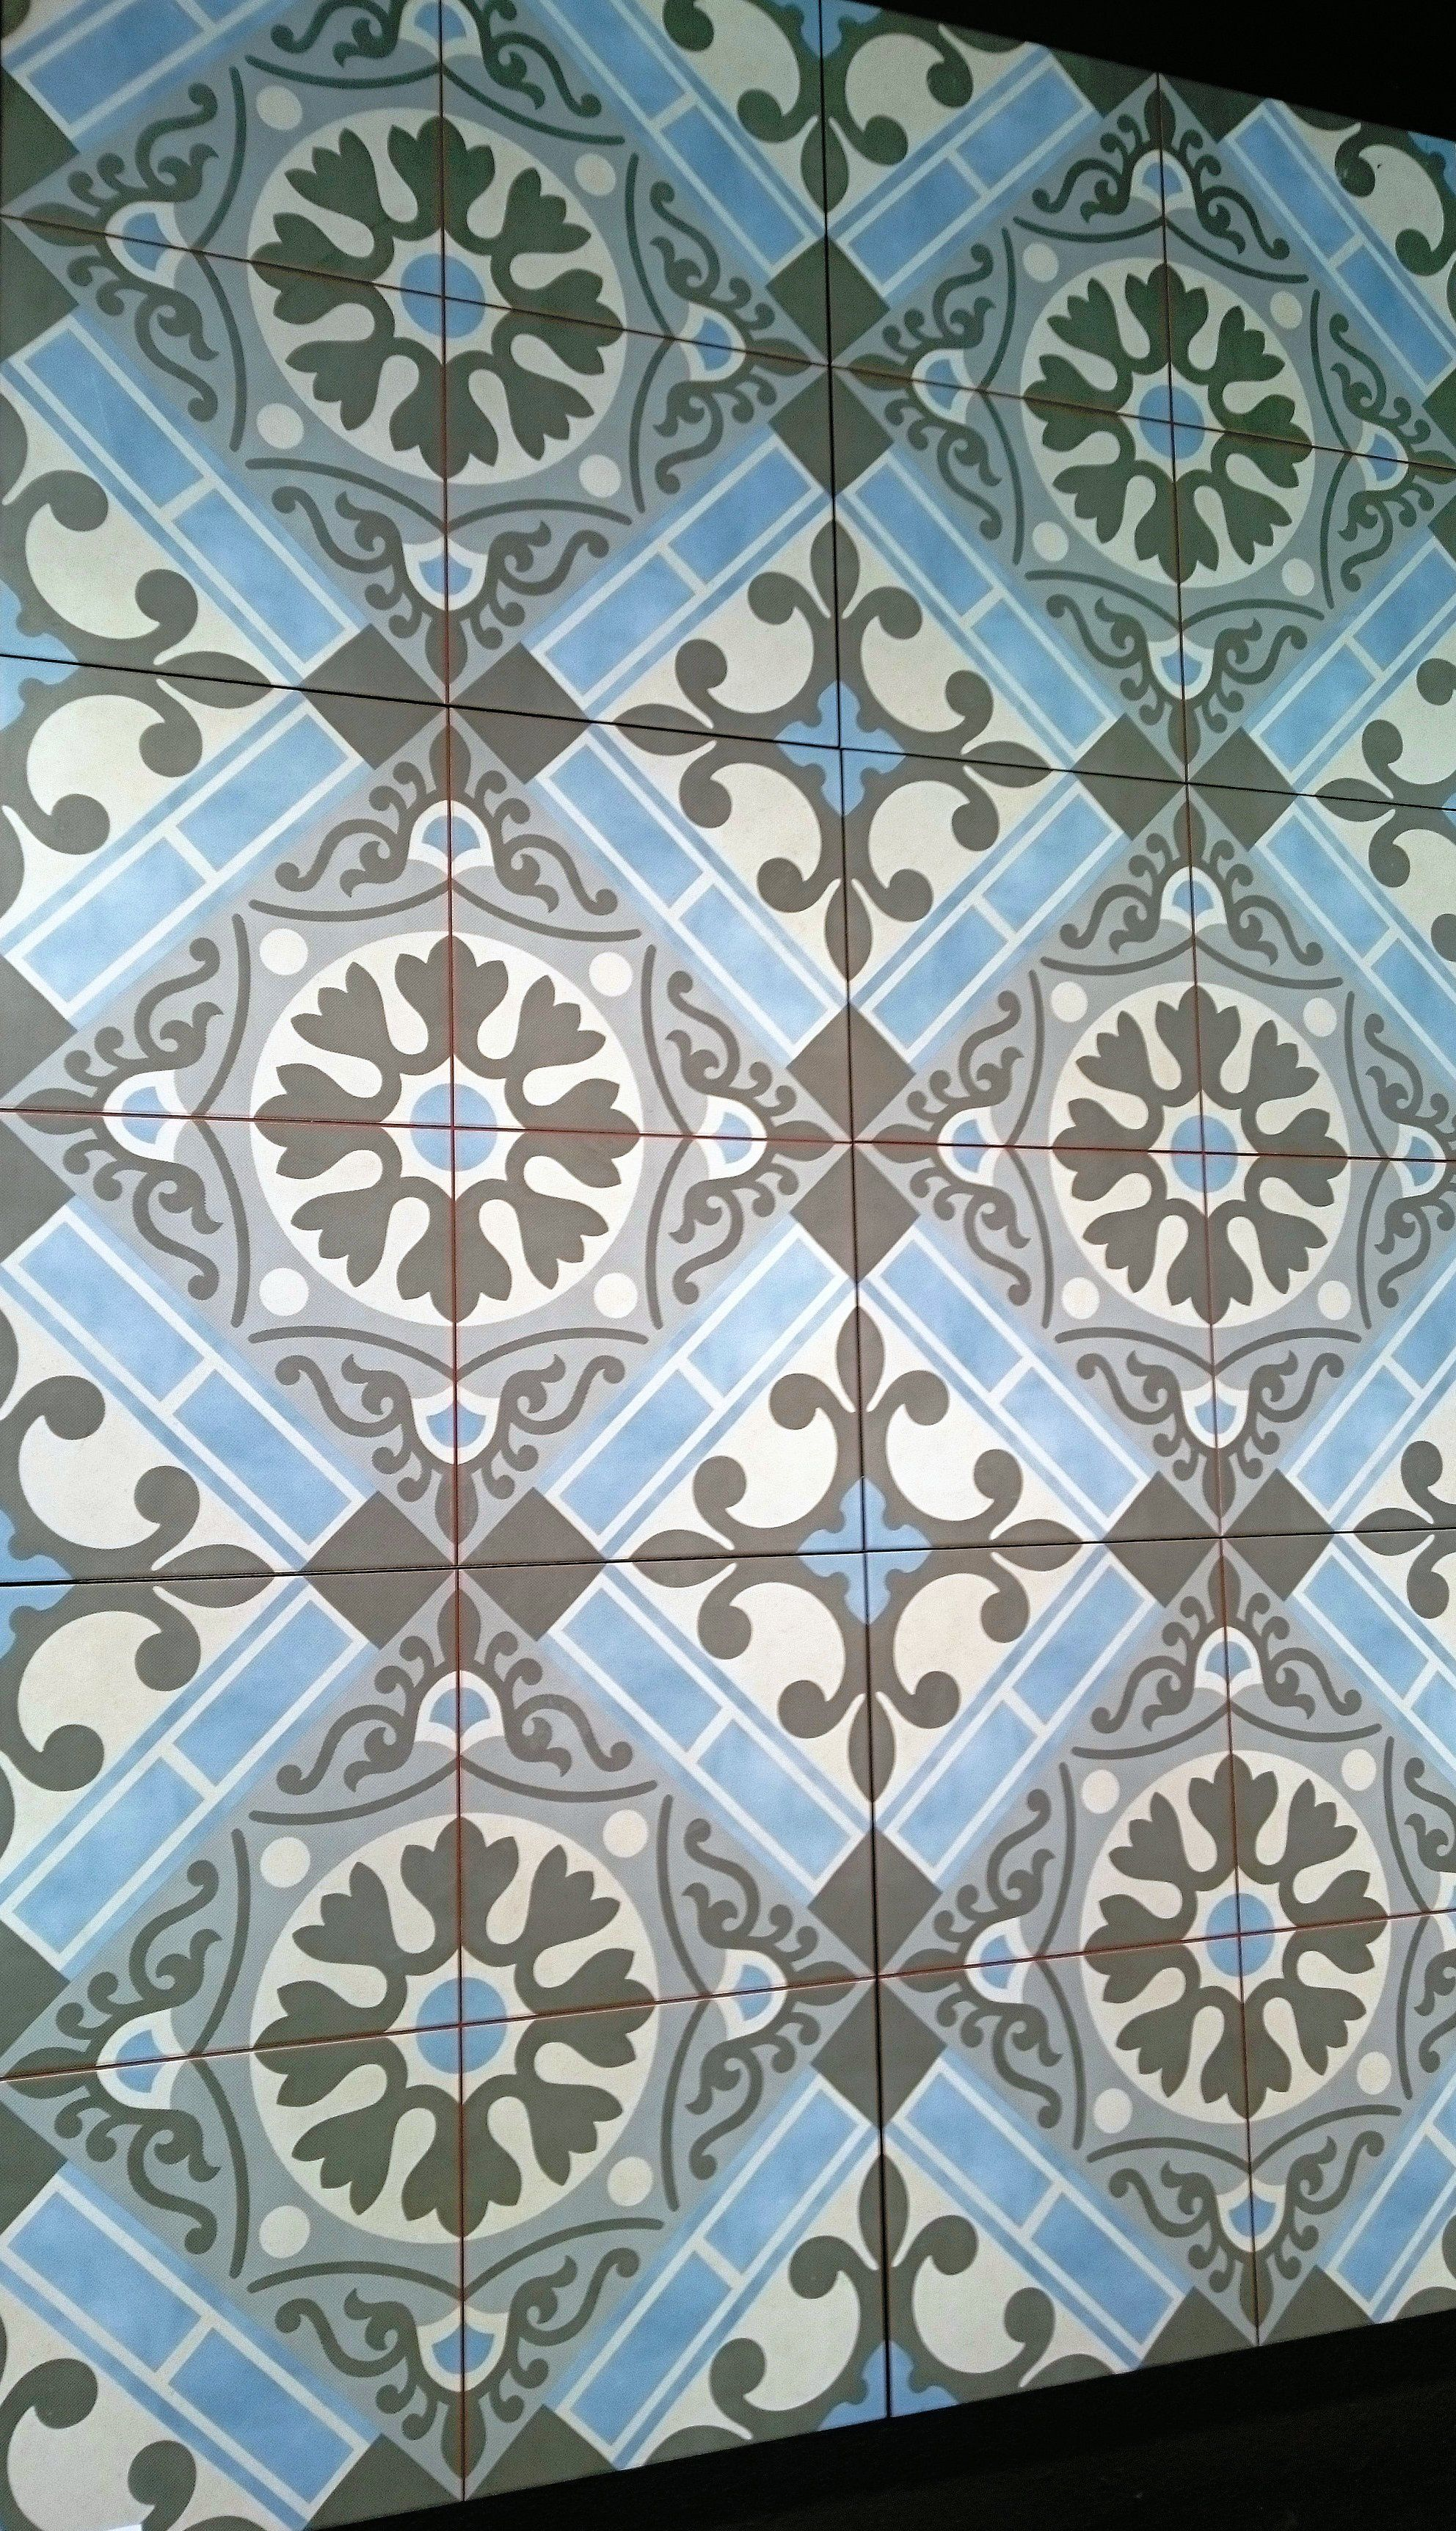 Replica encaustic tiles from spain these hard wearing ceramic tiles replica encaustic tiles from spain these hard wearing ceramic tiles require no sealing or maintenance dailygadgetfo Choice Image